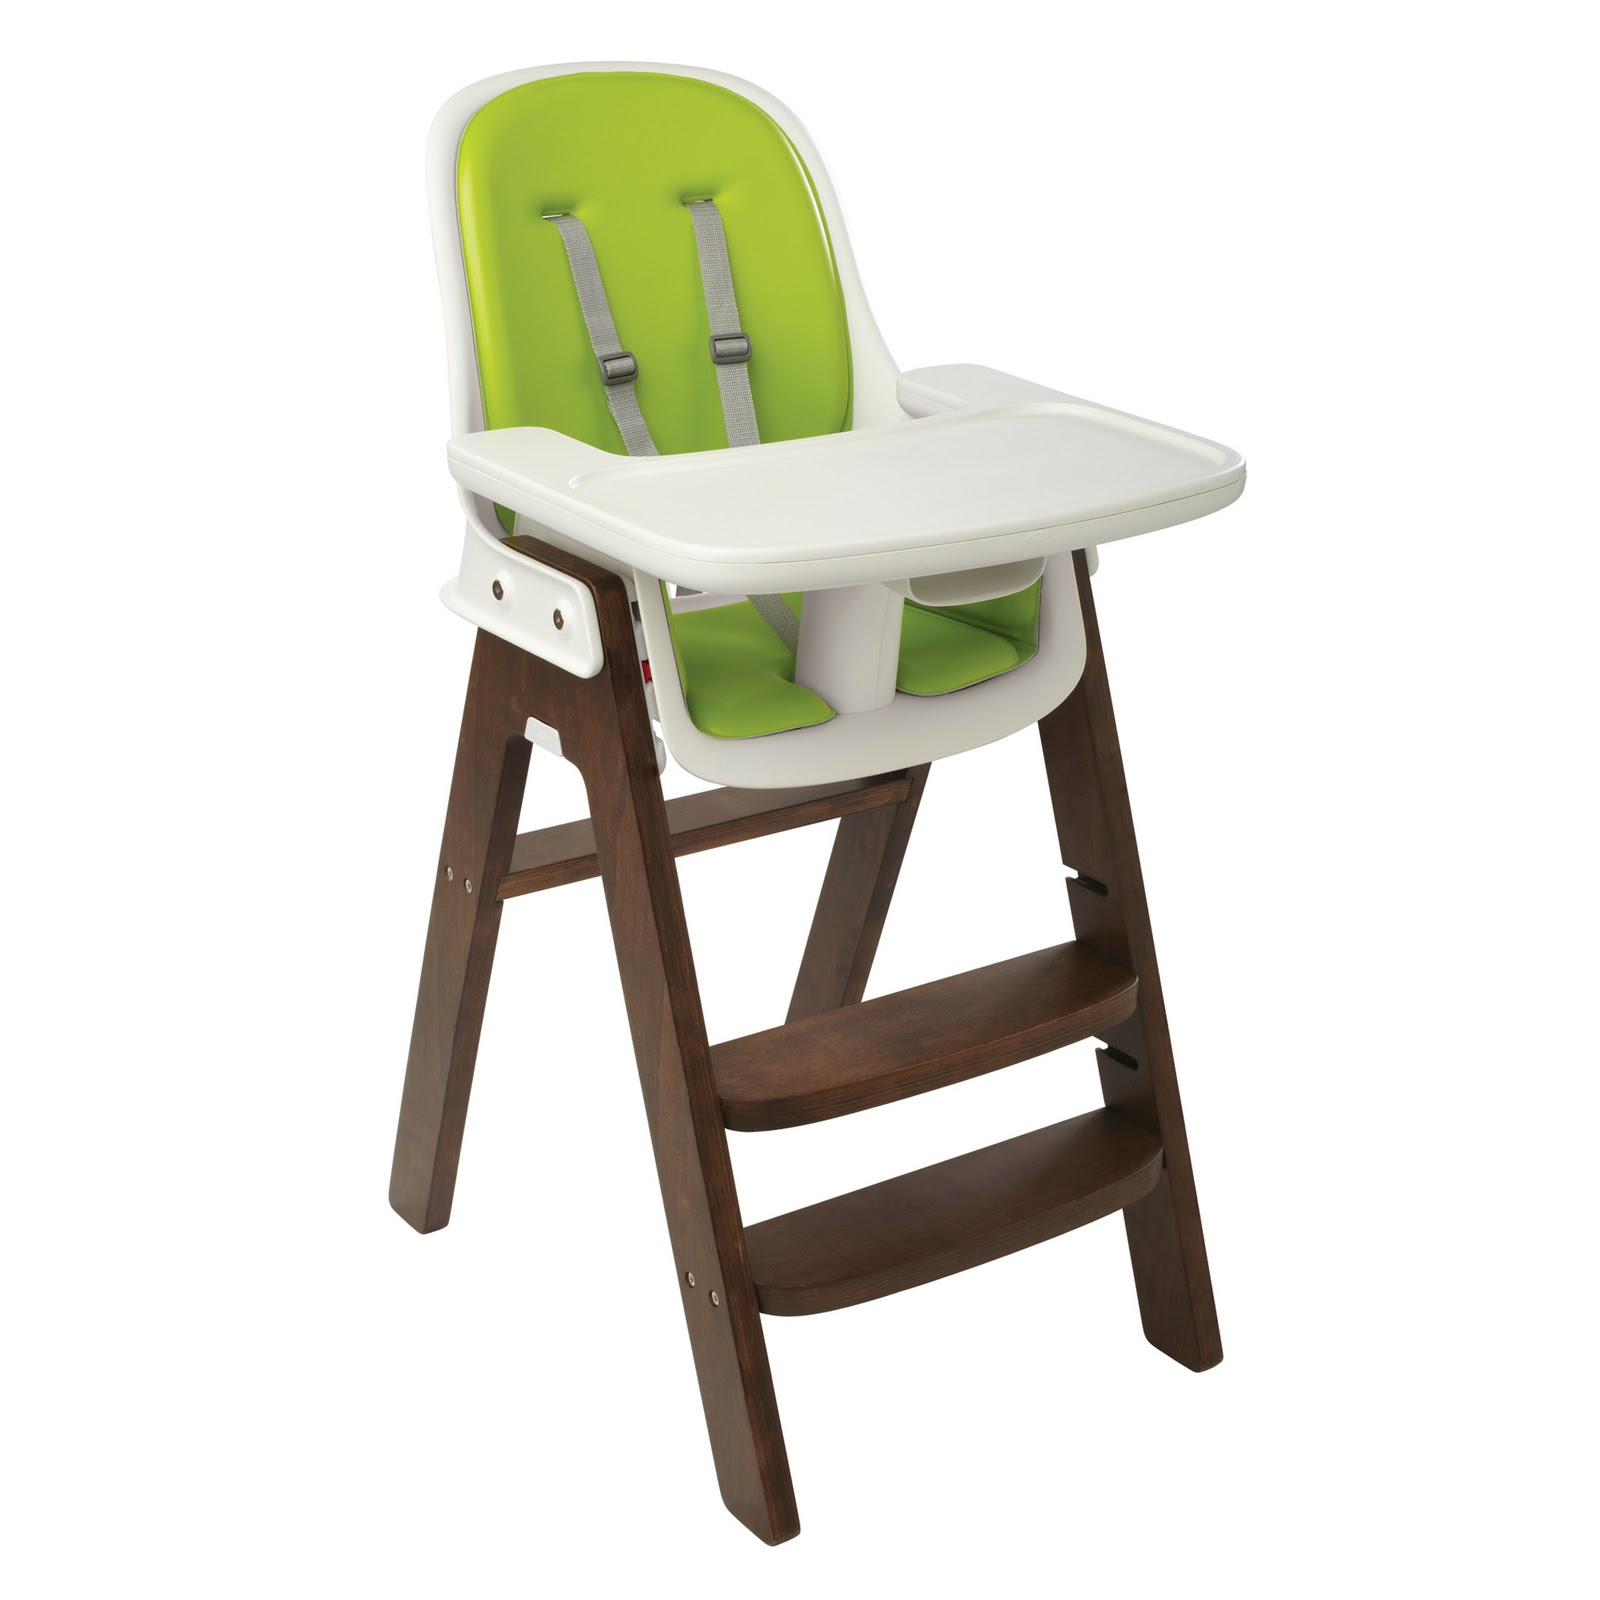 Modern Baby Digs: Introducing Oxo Sprout Tot High Chairs!